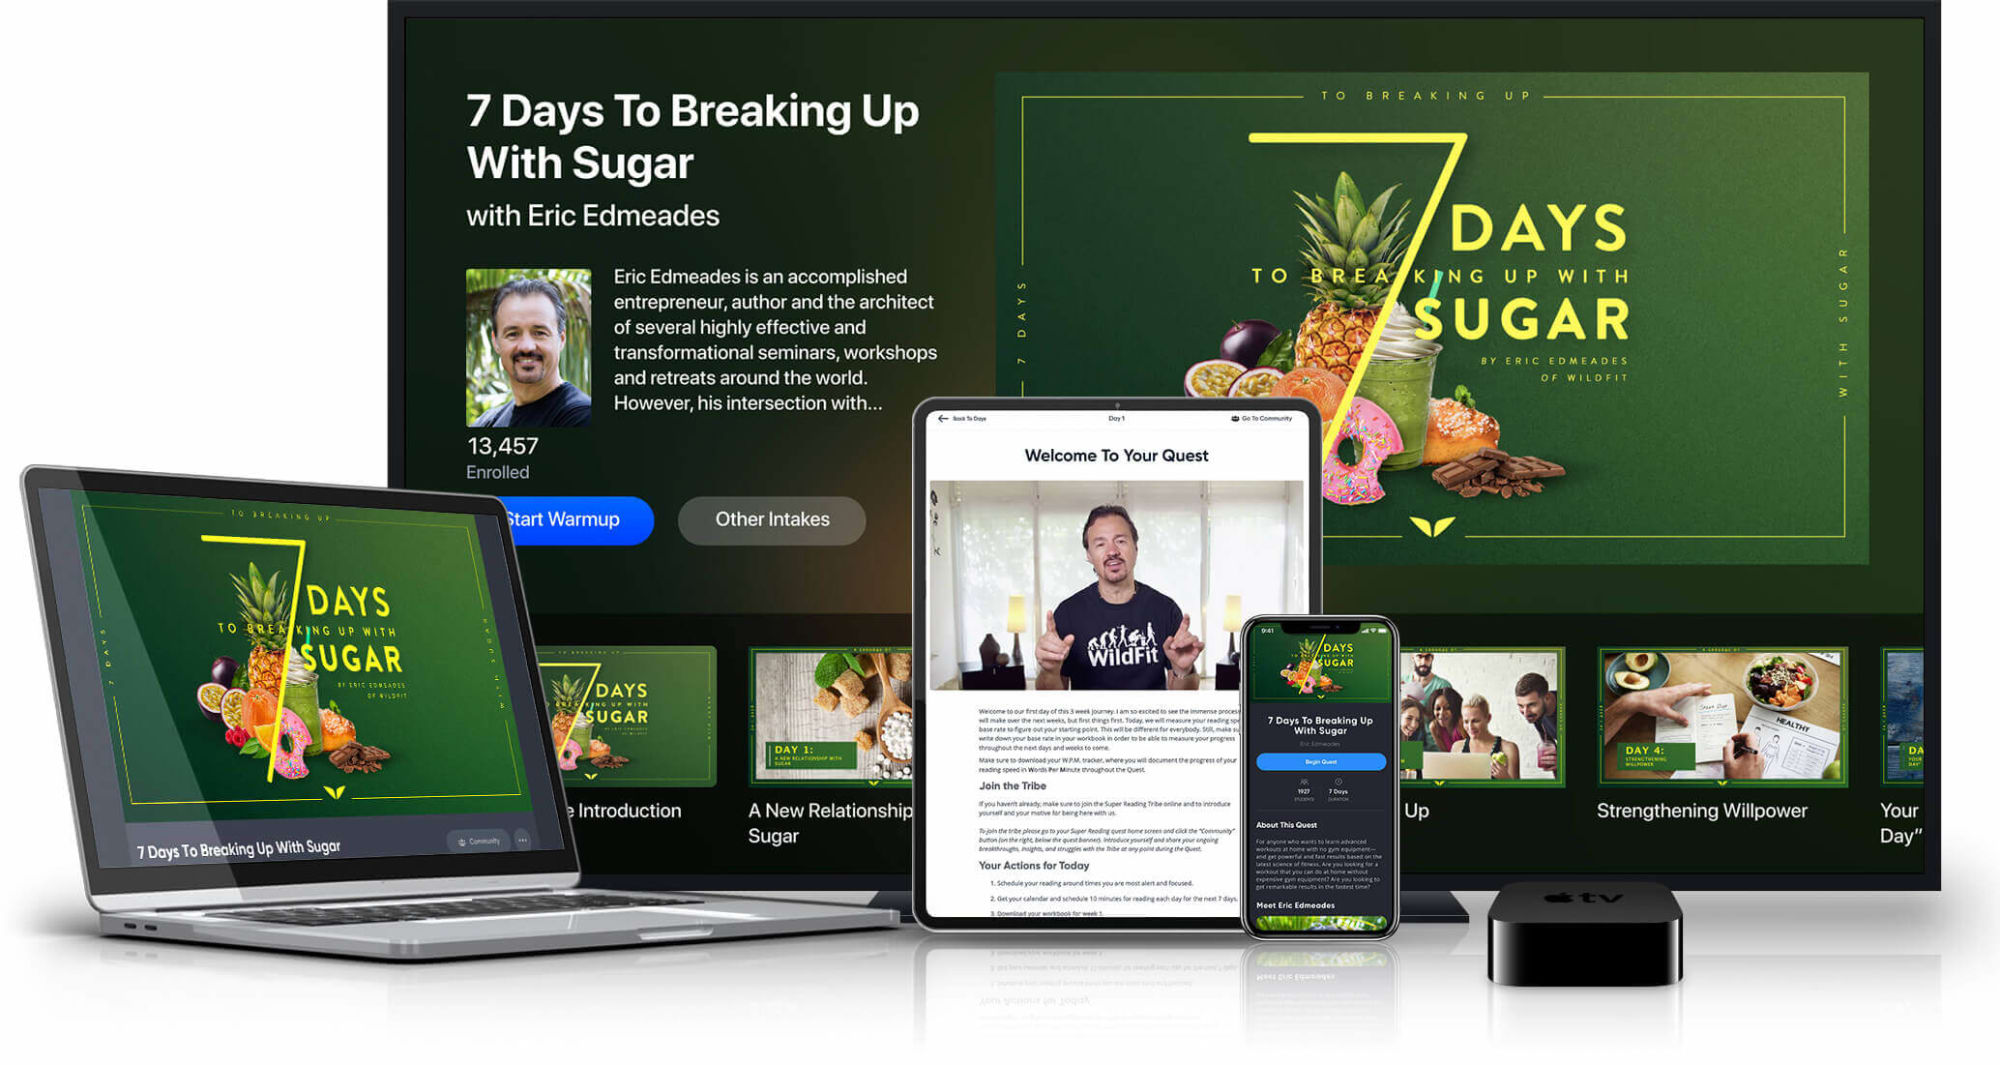 7 Days To Breaking Up With Sugar on various devices